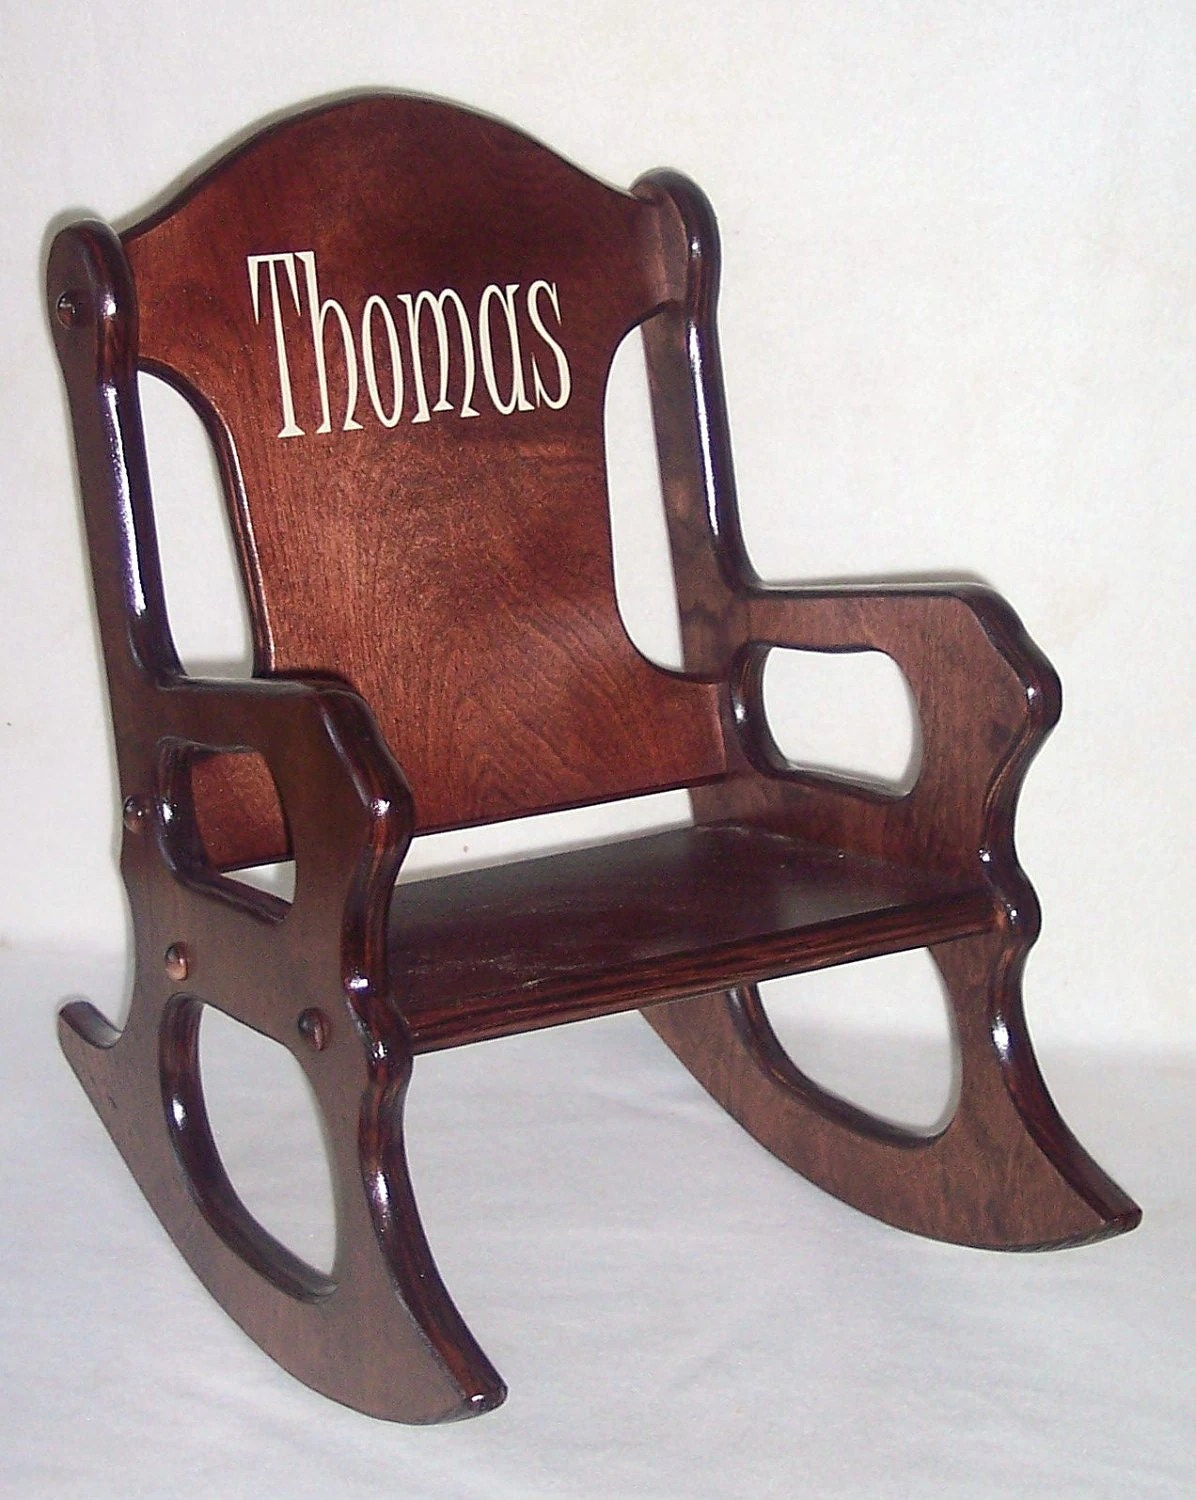 Personalized Chairs Wooden Kids Rocking Chair Personalized Cherry Finish